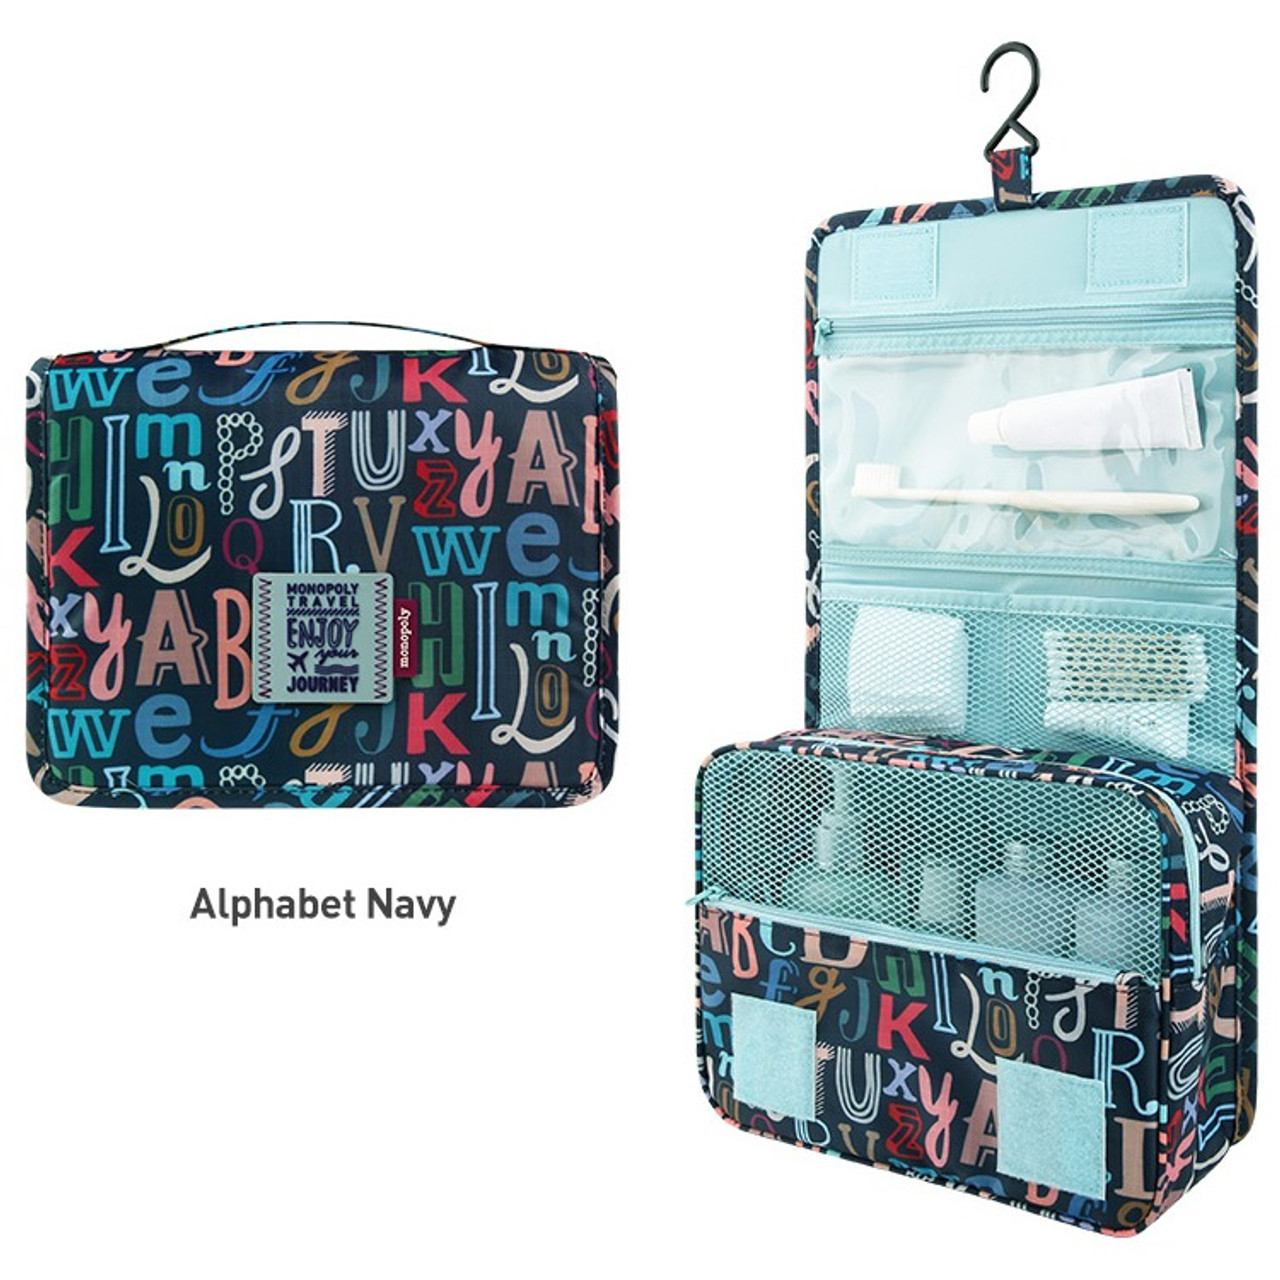 0799a6b1f4d9 Alphbet navy - Enjoy journey large travel hanging toiletry pouch bag